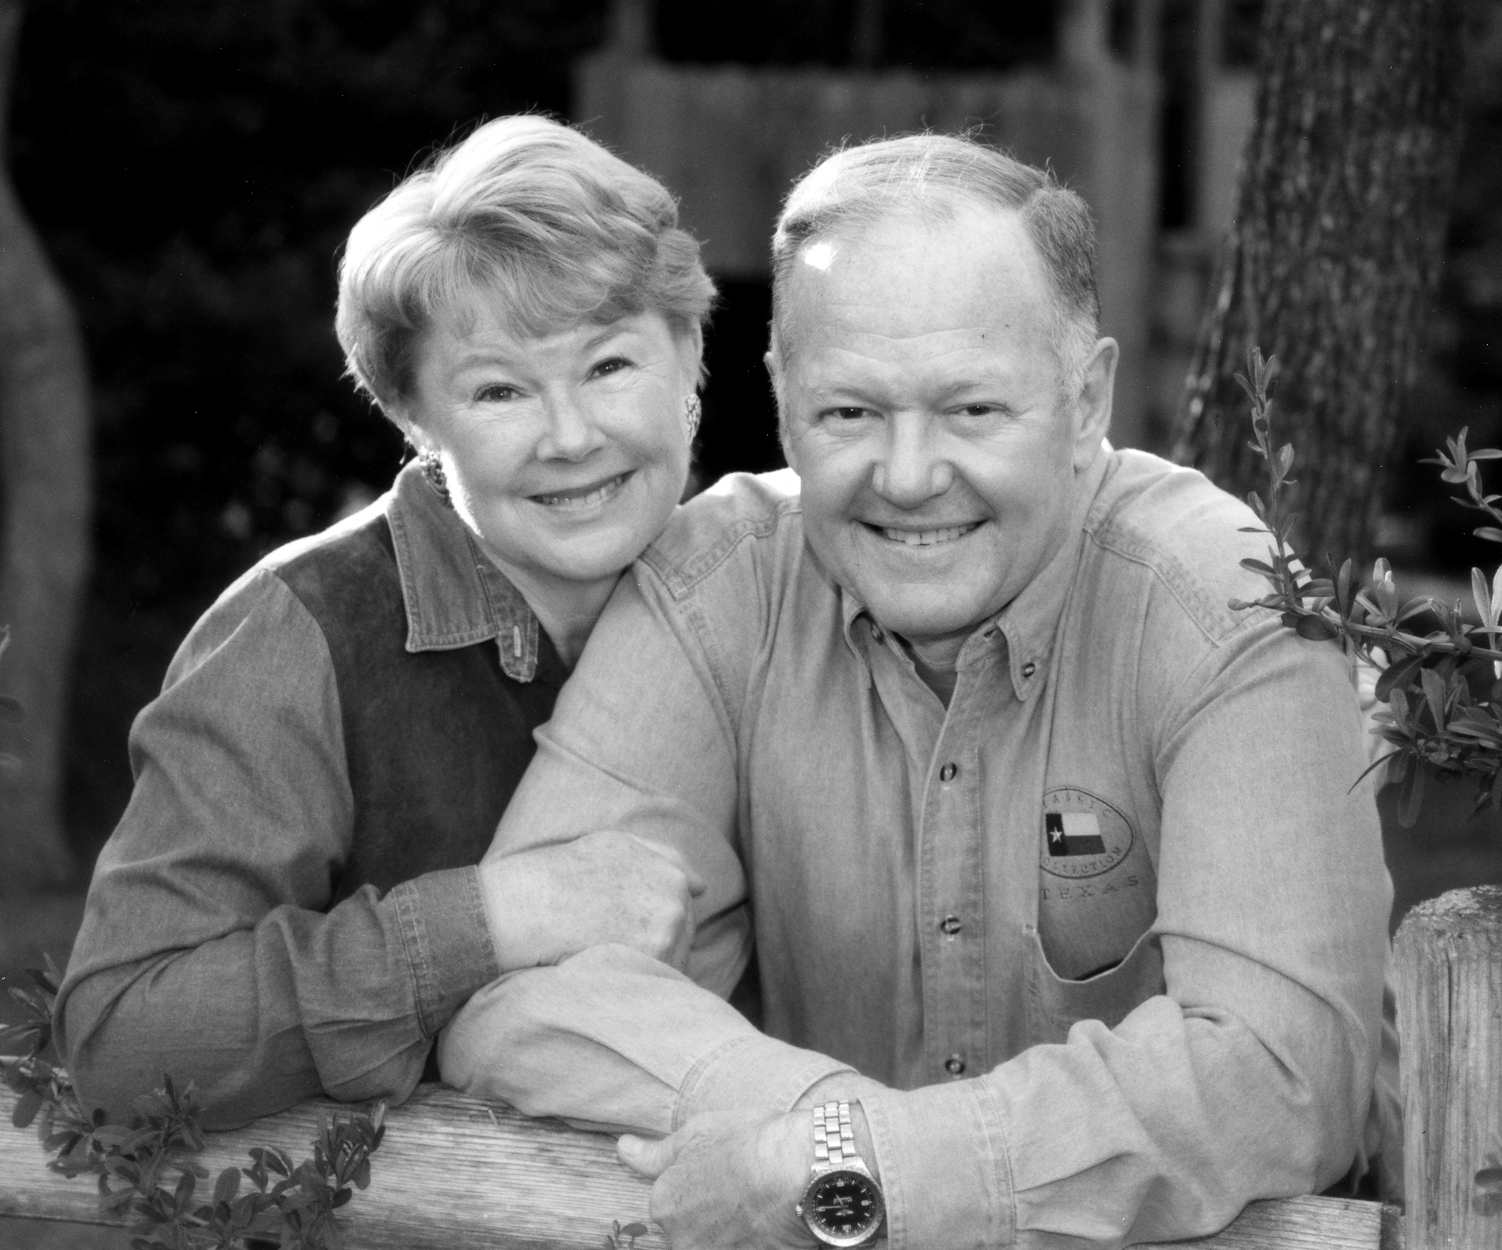 Ray and Nancy Hunt